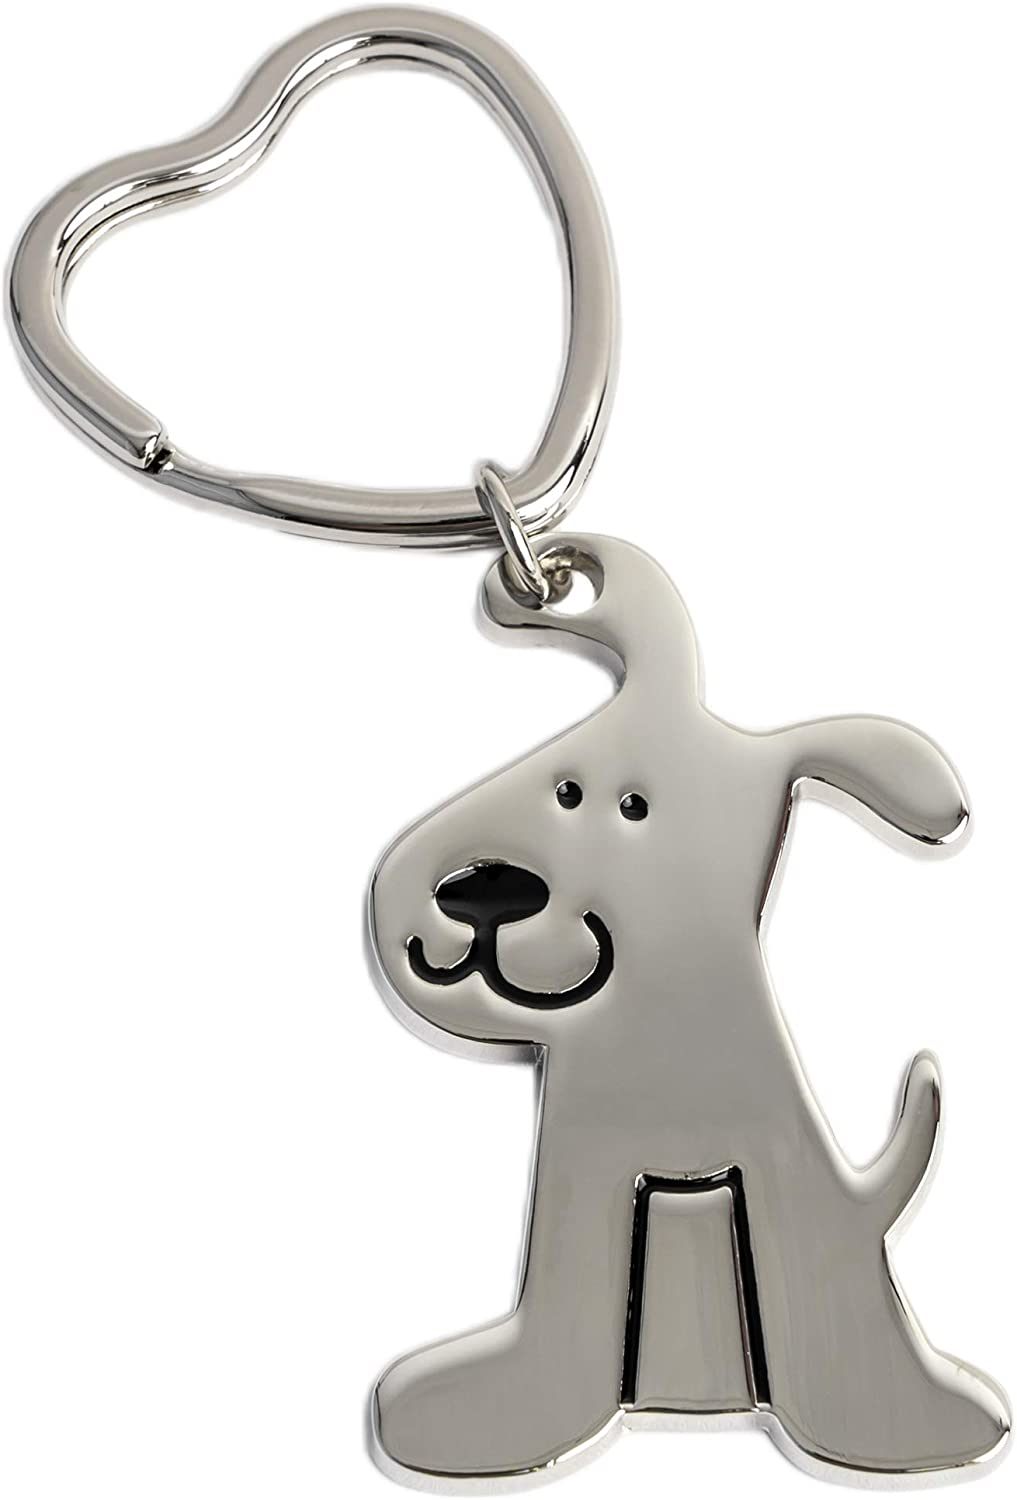 Rescue Pup Keychain - Great Gift for a Dog Lover, Each Purchase Provides 4 Donated Meals to Shelter Dogs